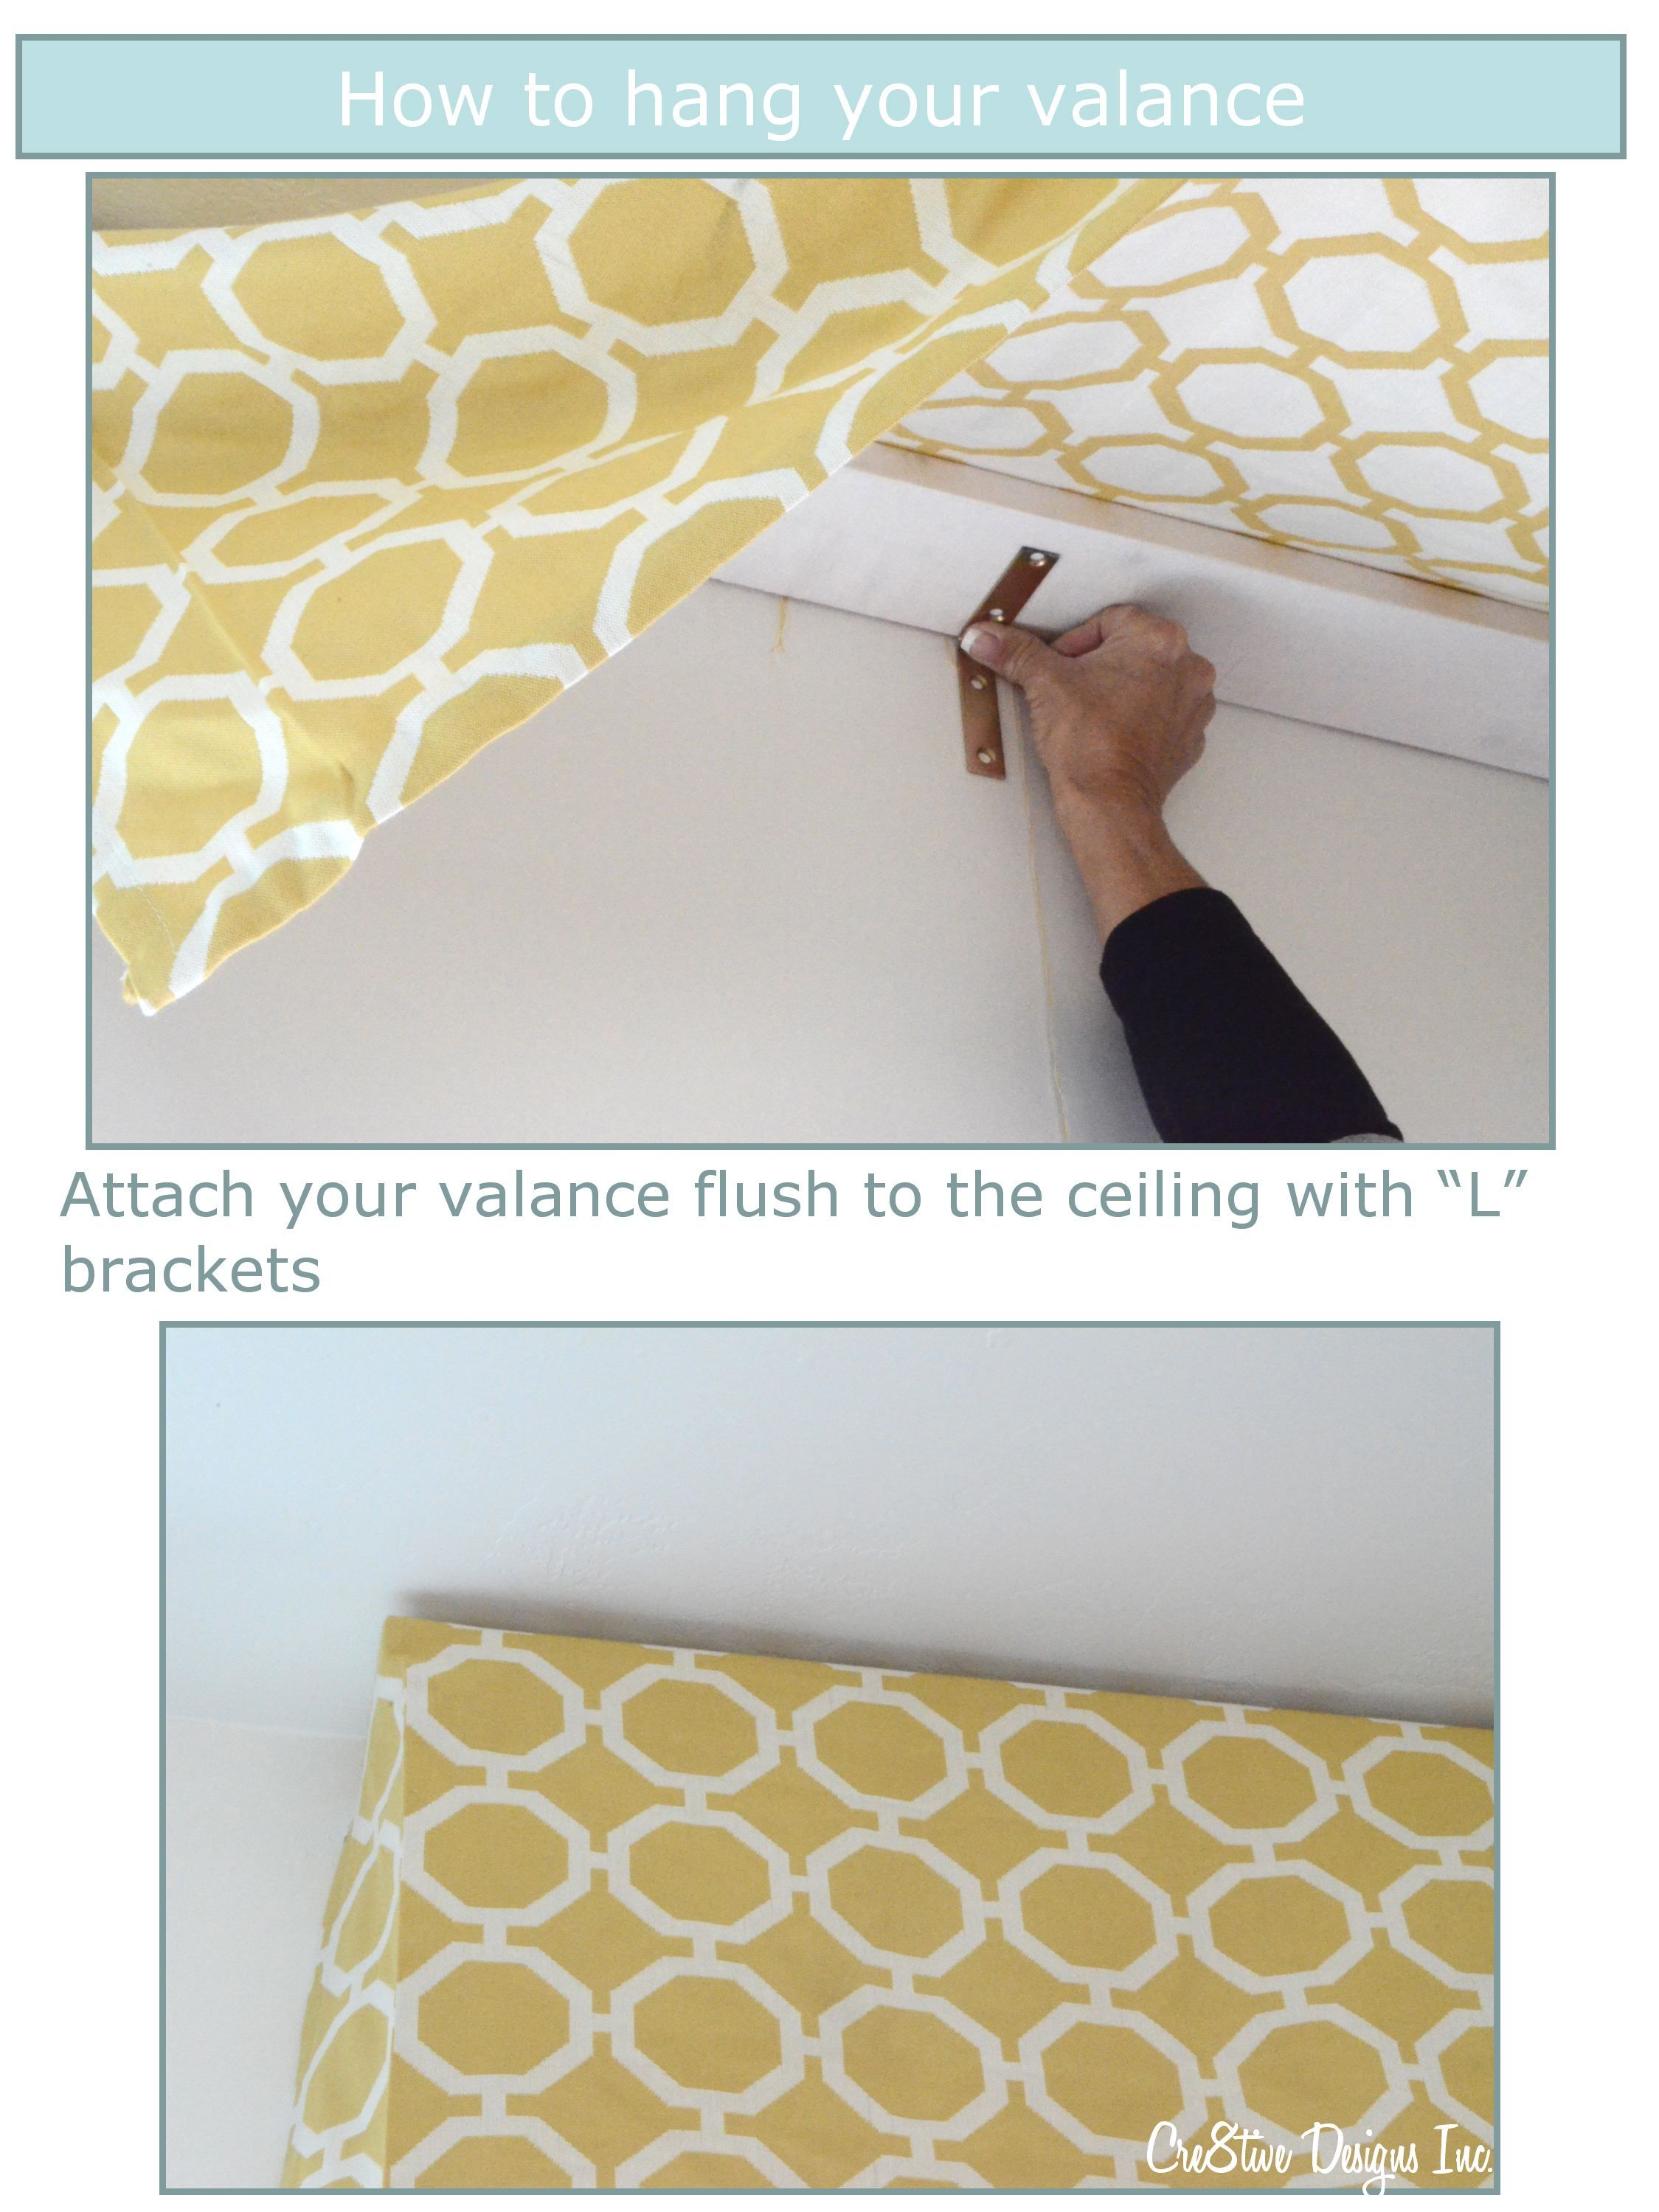 Great Directions On How To Hang A Valance Including The